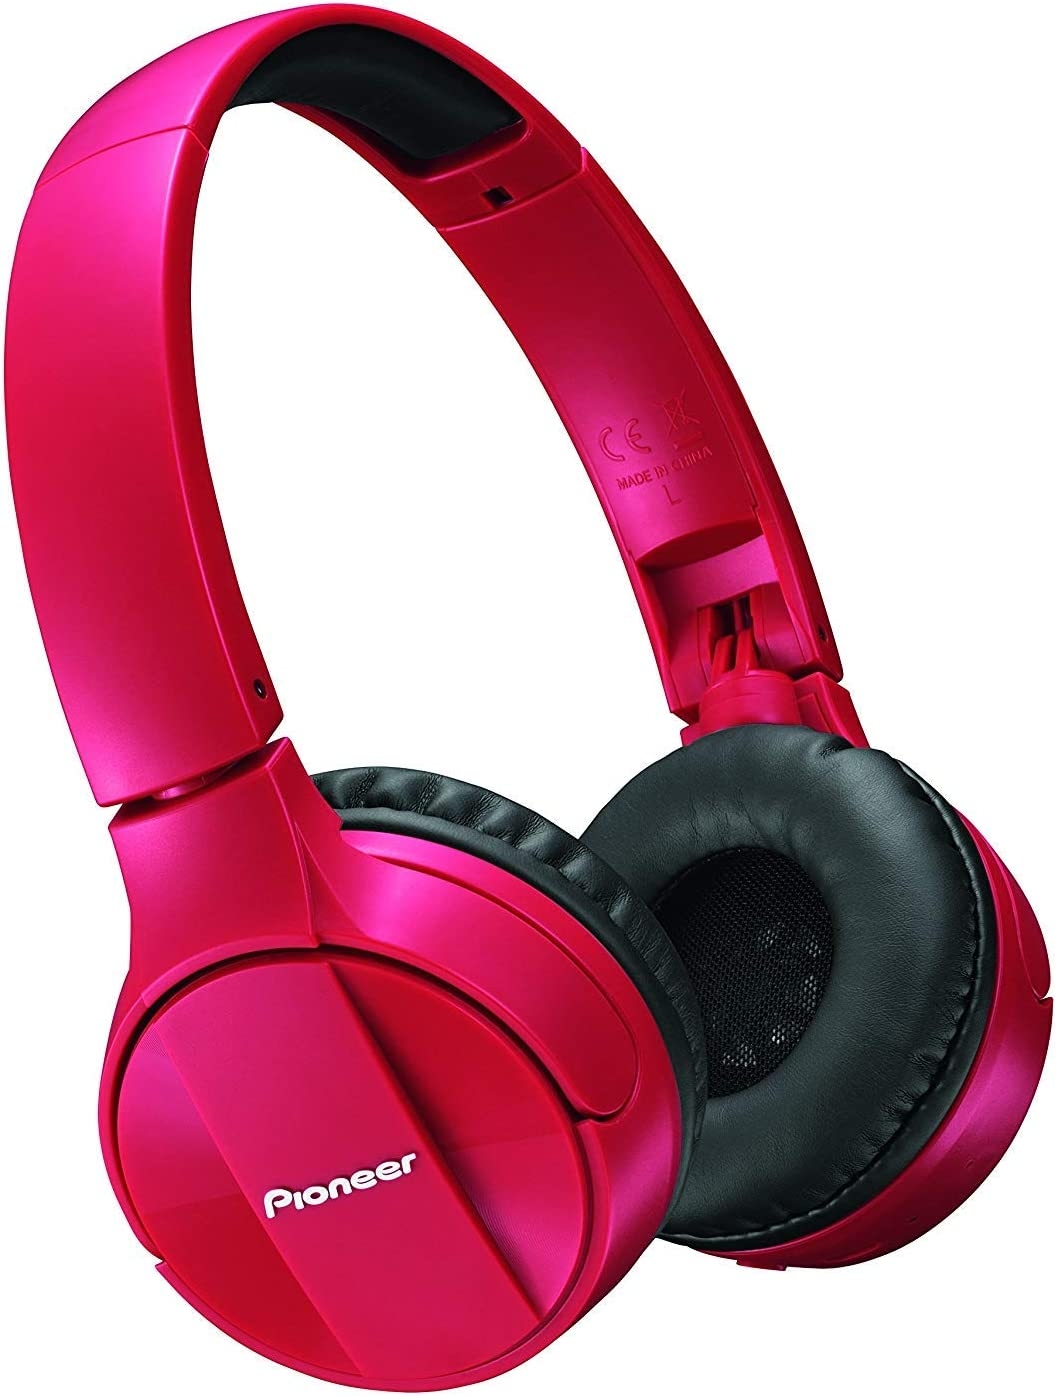 Pioneer Home Wireless Bluetooth Stereo H, red (SE-MJ553BT-R)